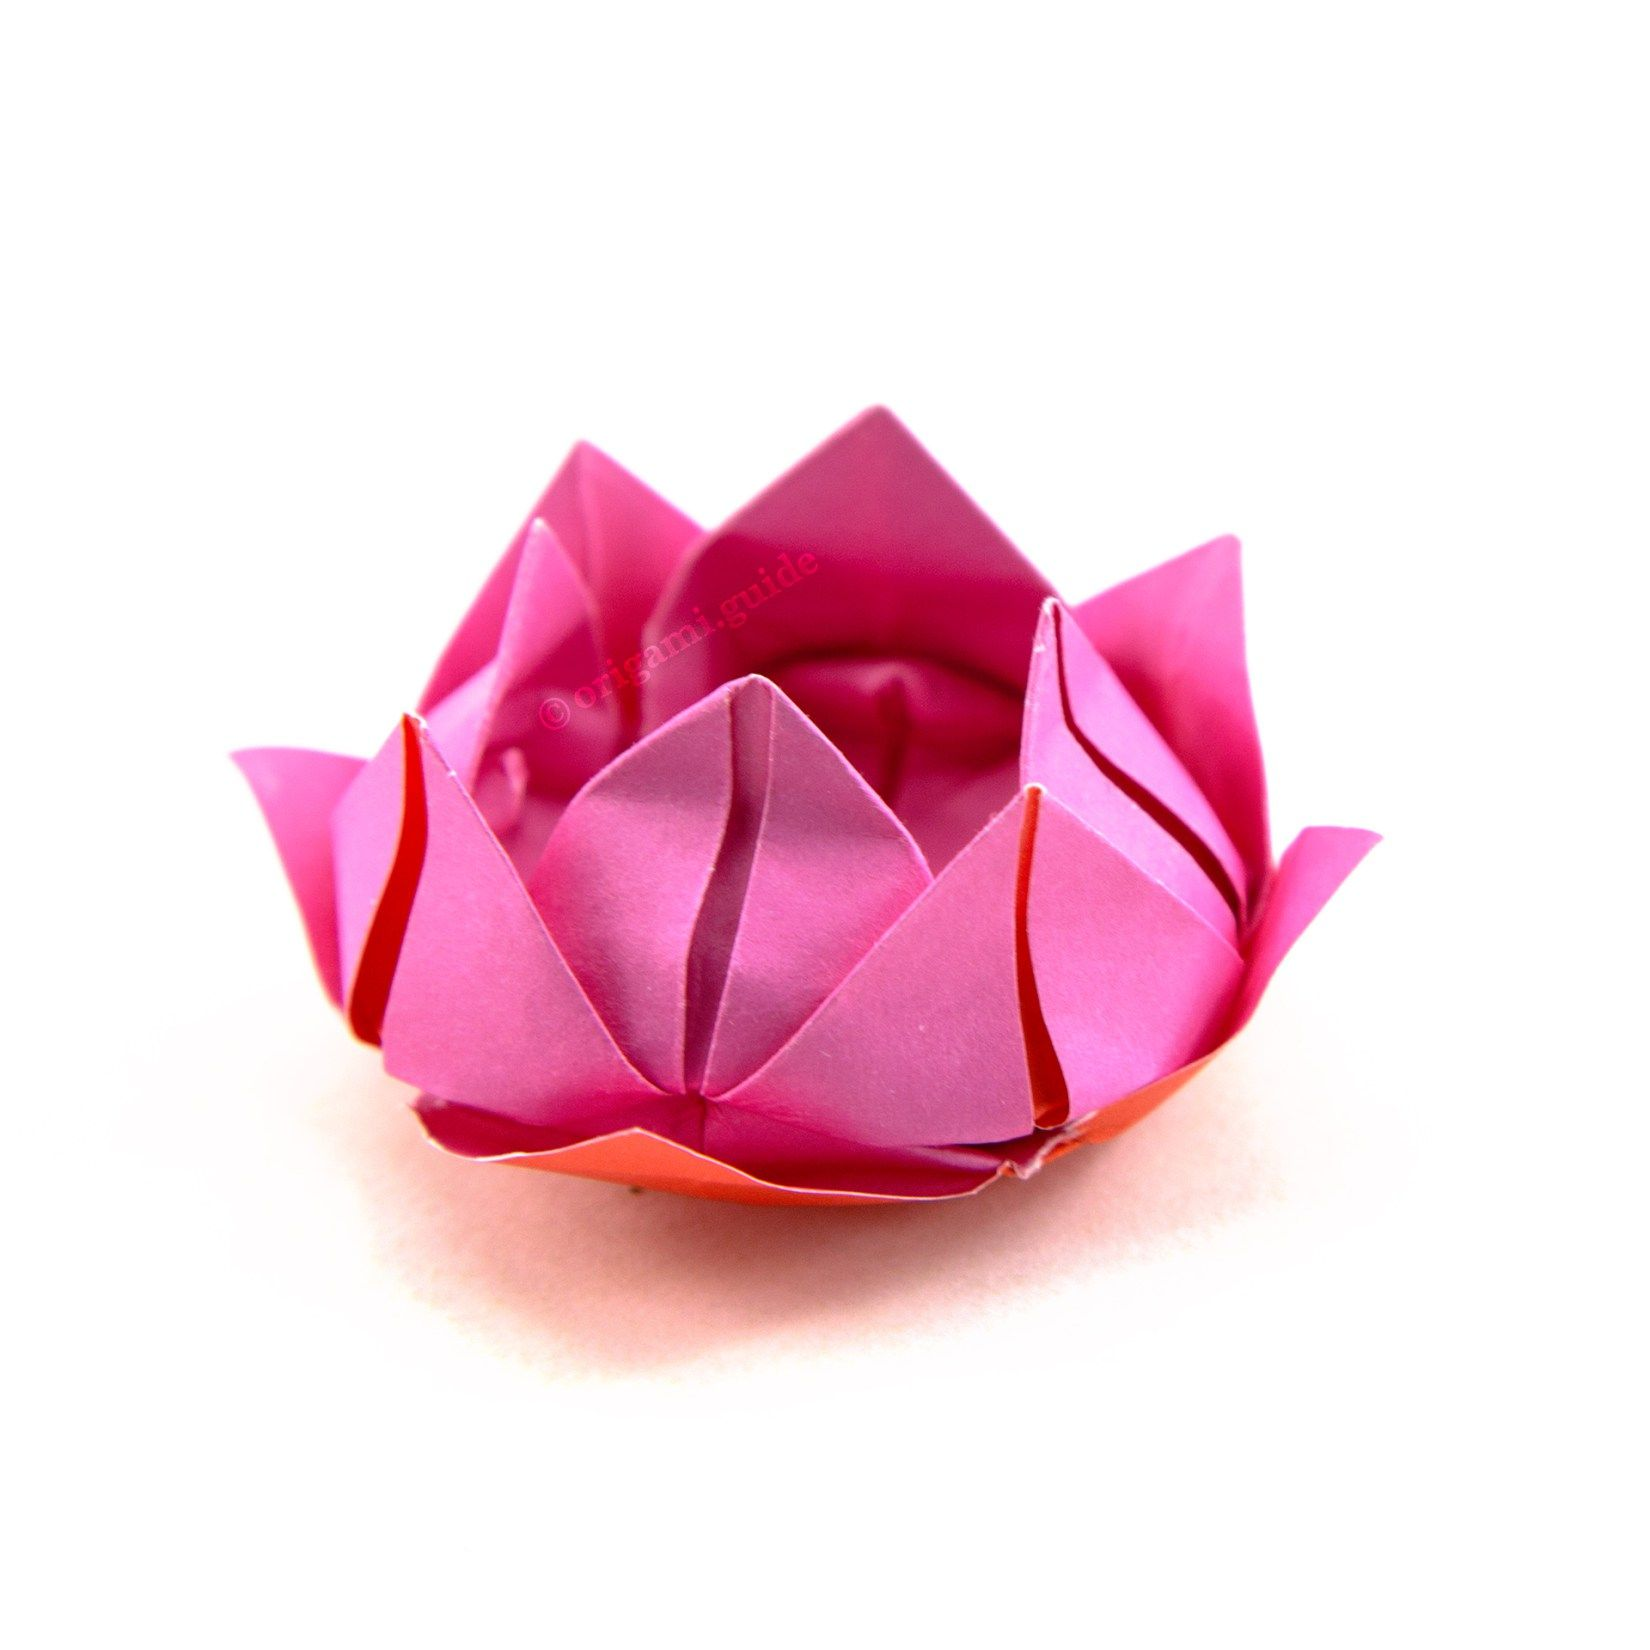 How to make an origami lotus flower pinterest lotus flower how to make an origami lotus flower origami guide izmirmasajfo